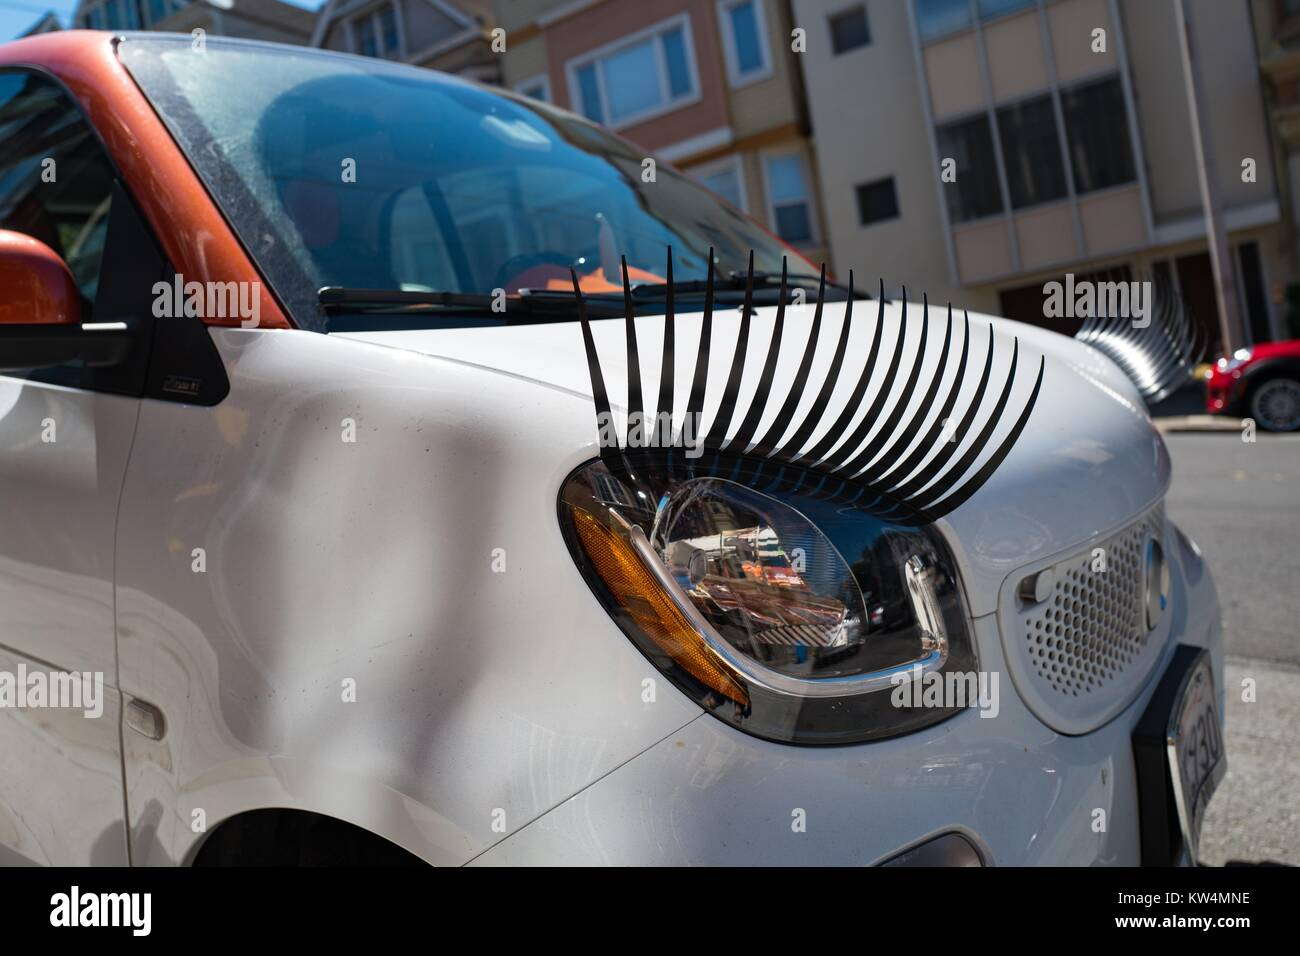 Small Car With Headlights Decorated To Look Like Eyelashes Parked